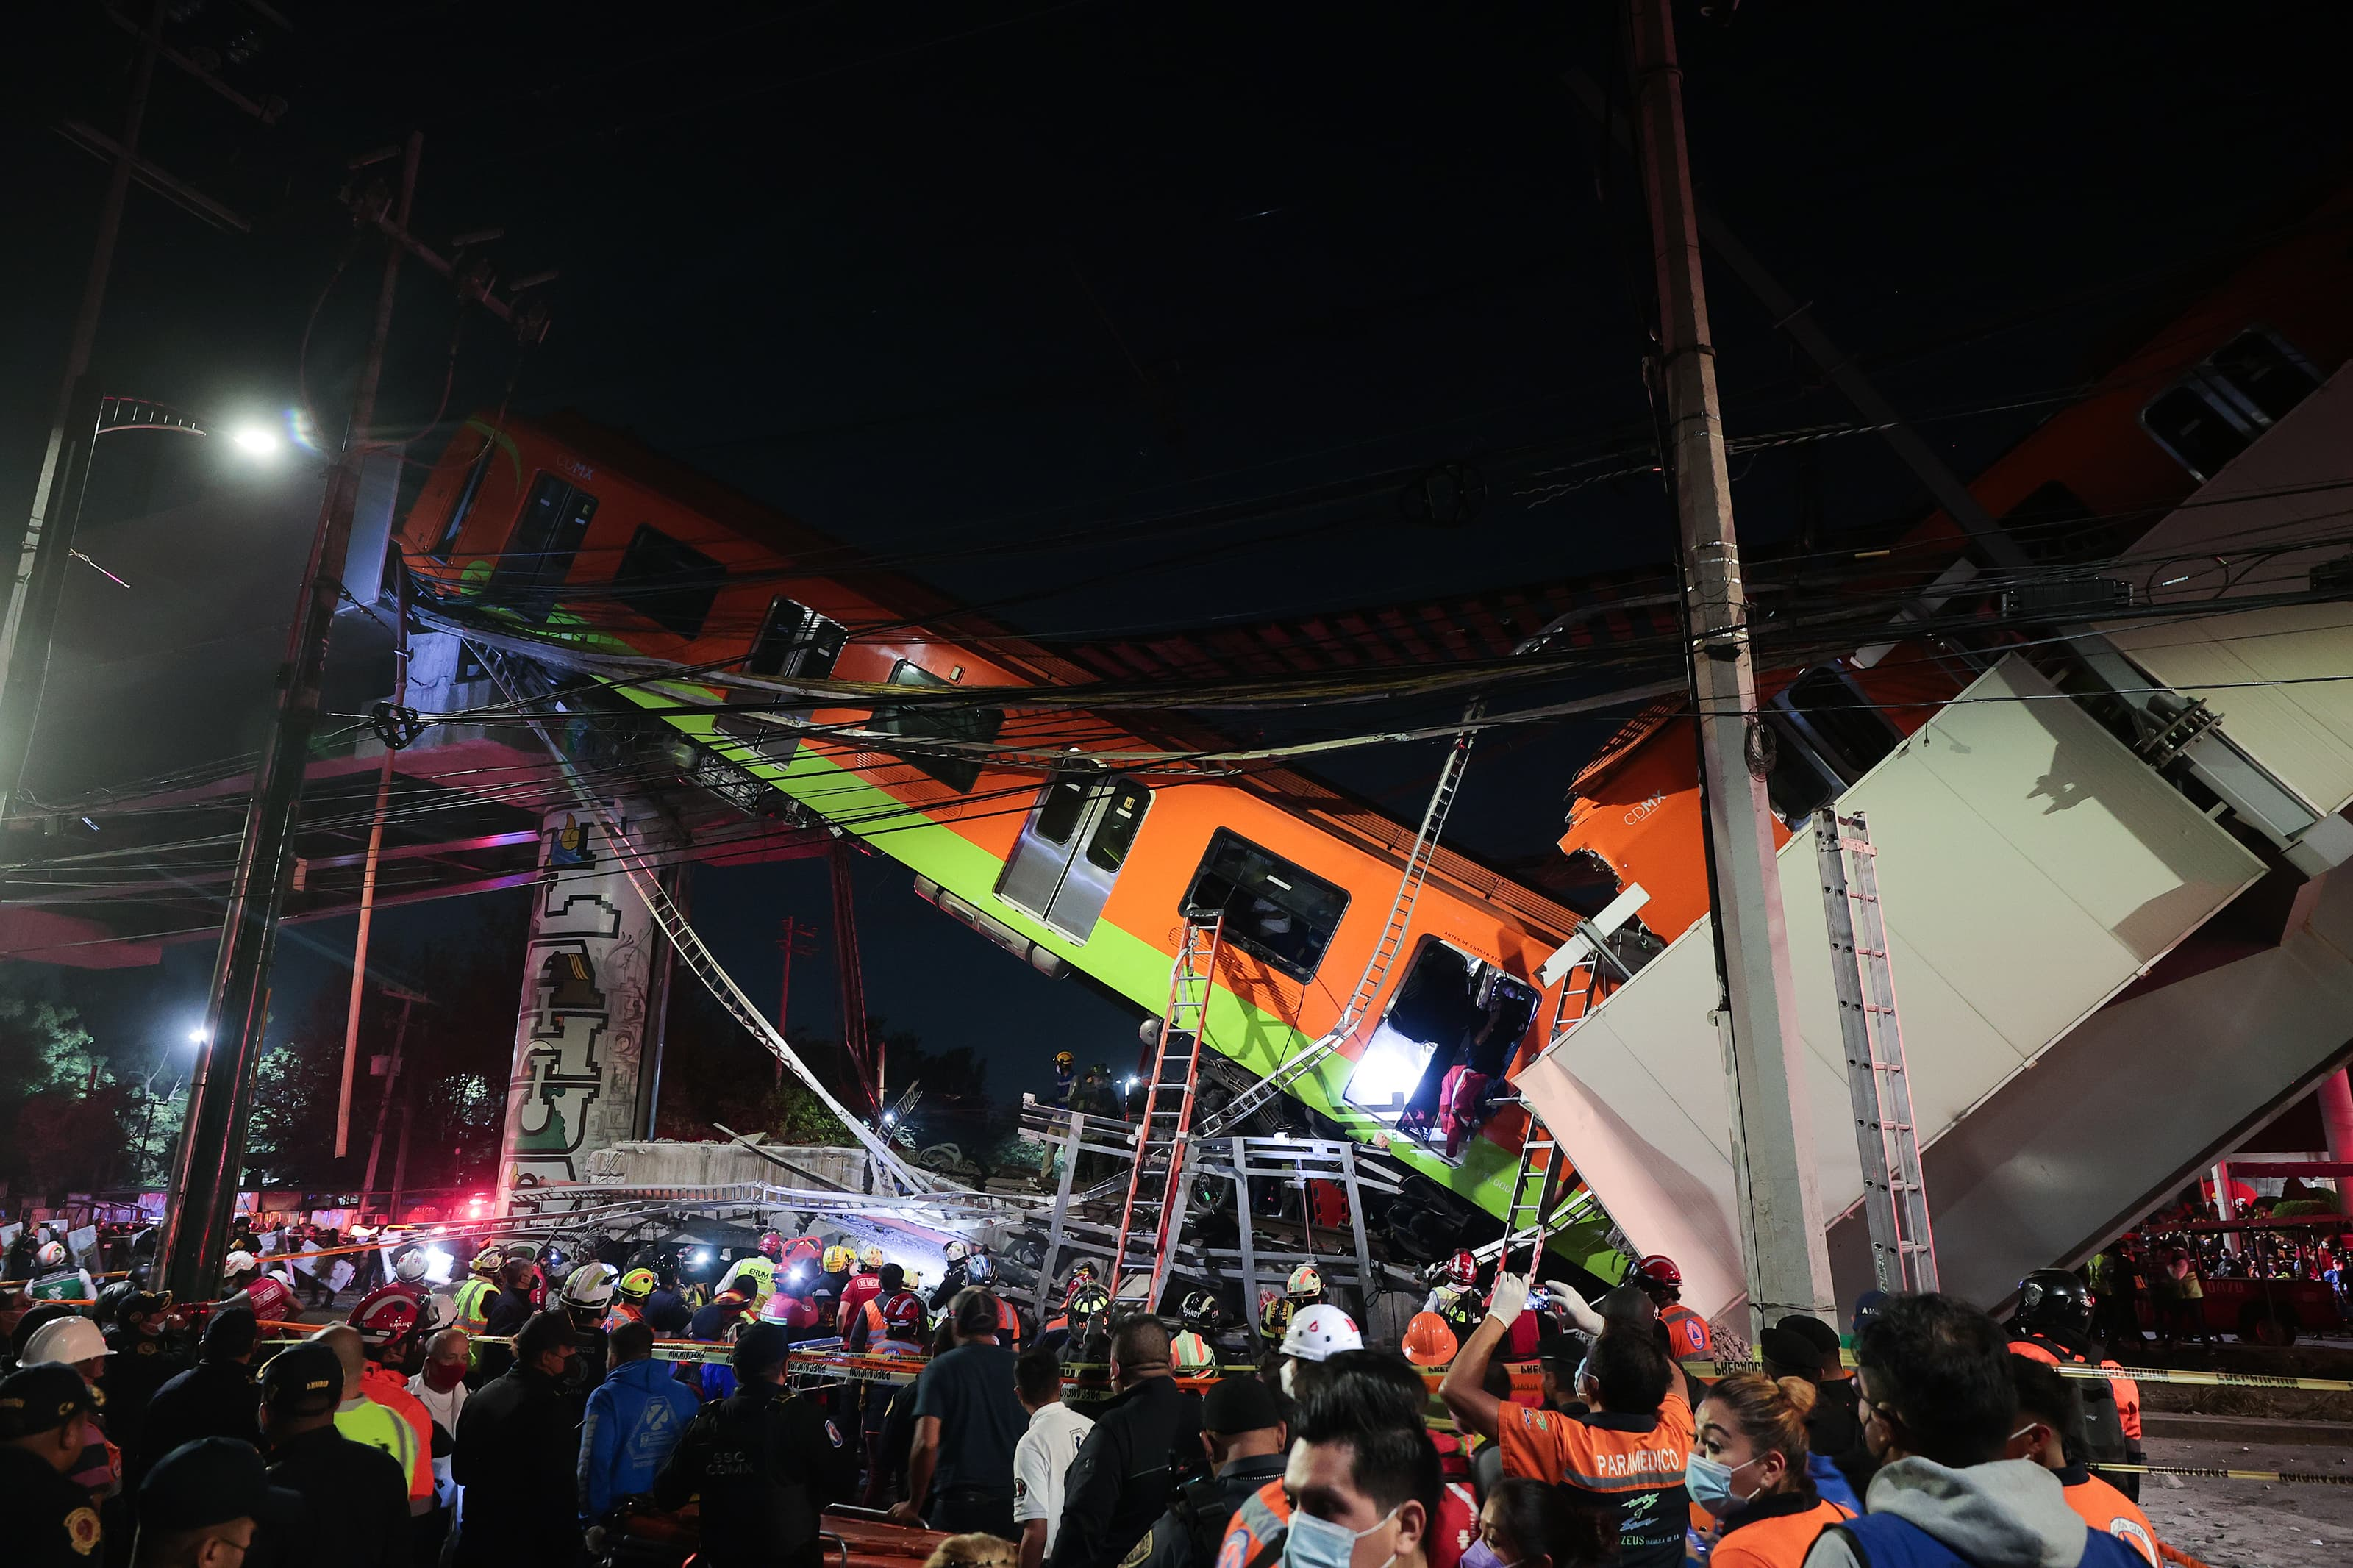 Mexico City metro viaduct collapses on road killing at least 15 people